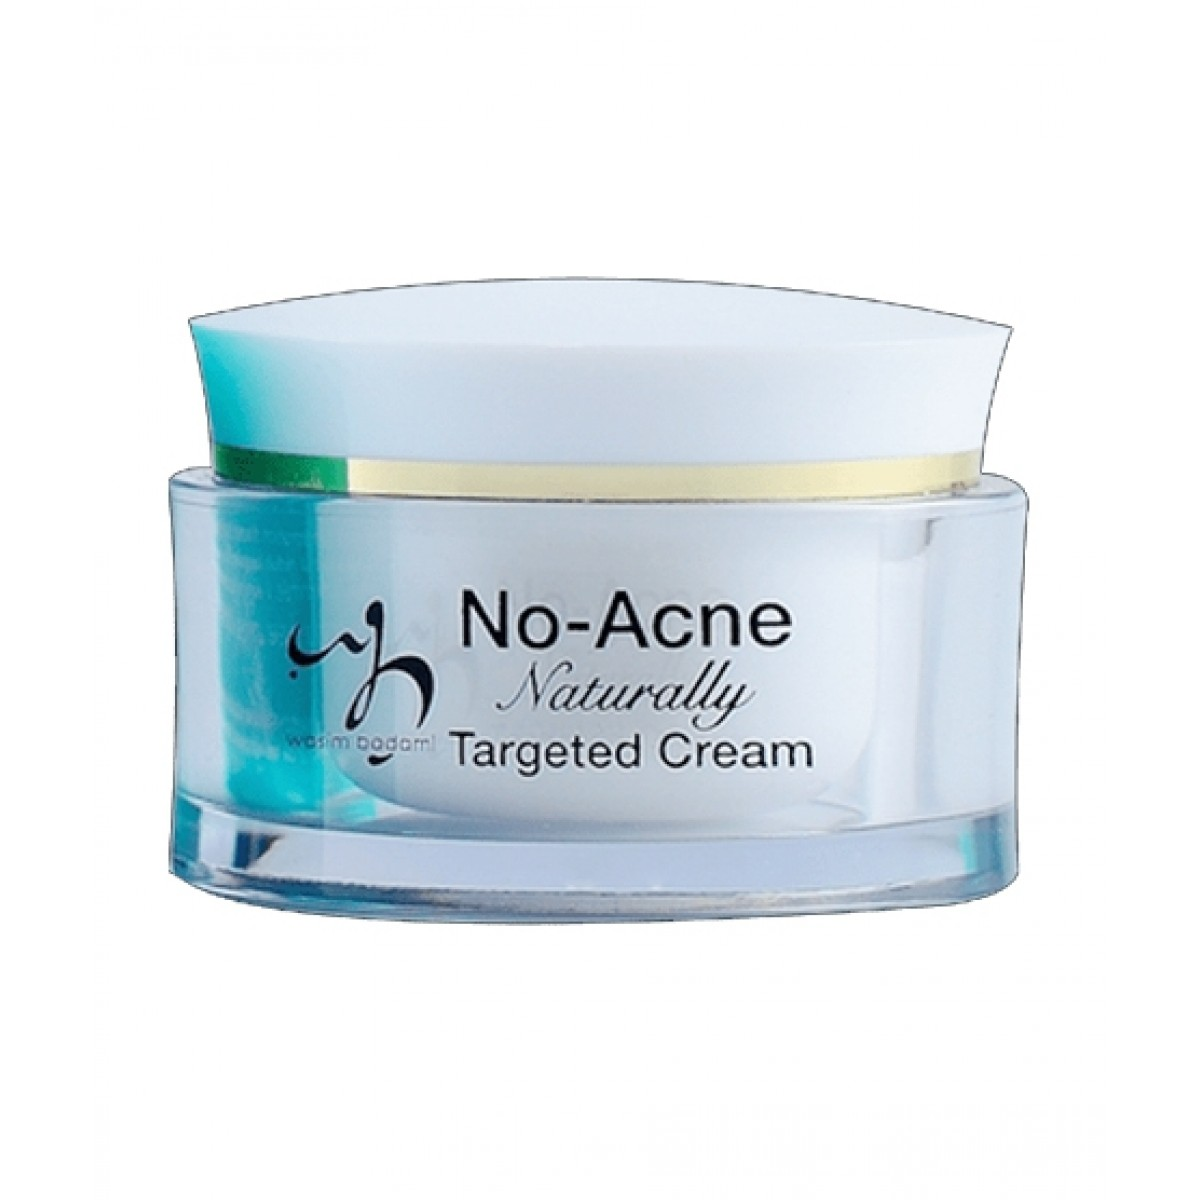 Wb By Hemani No Acne Targeted Cream 50ml Price In Pakistan Buy